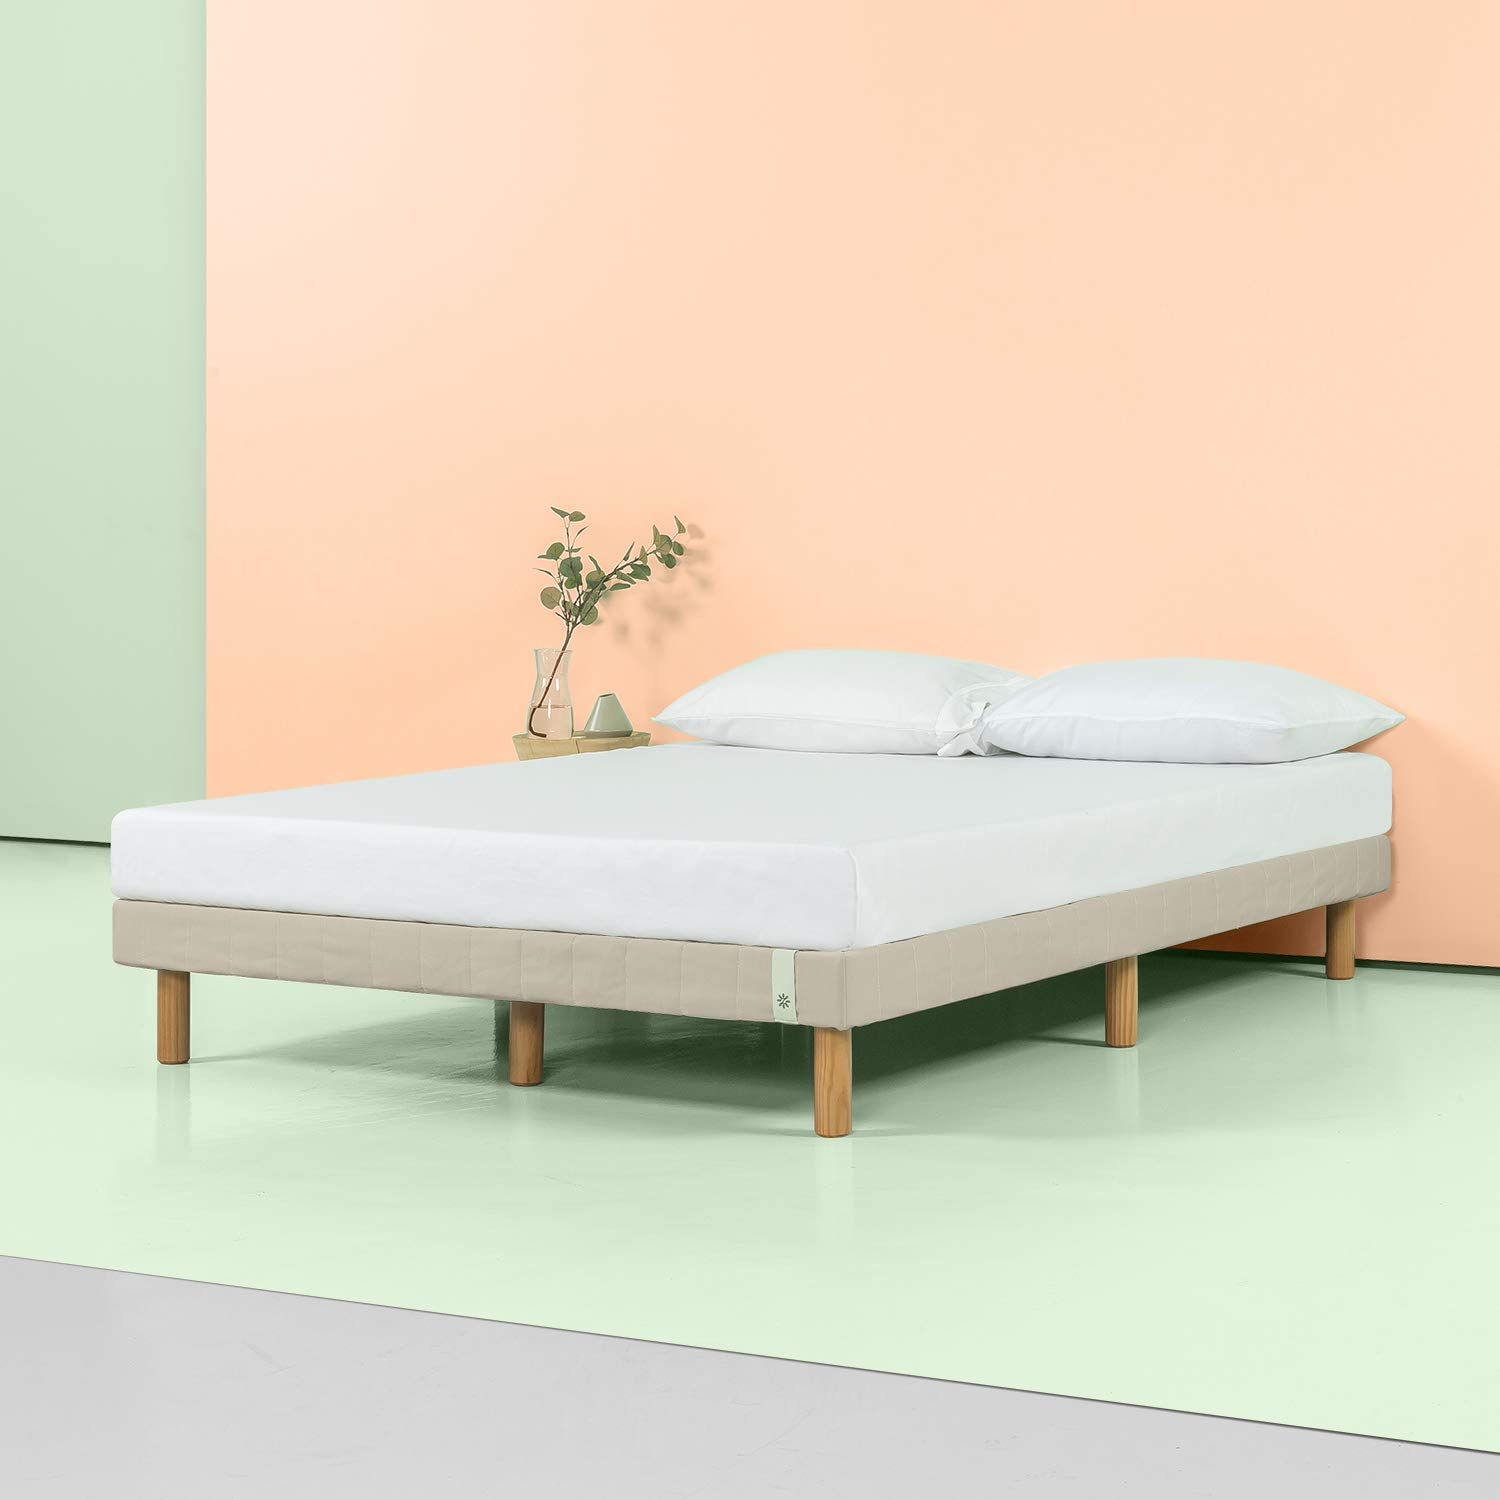 Zinus 11 Inch Quick Snap Standing Mattress Foundation Low profile Platform Bed No Box Spring needed, Beige, Narrow Twin